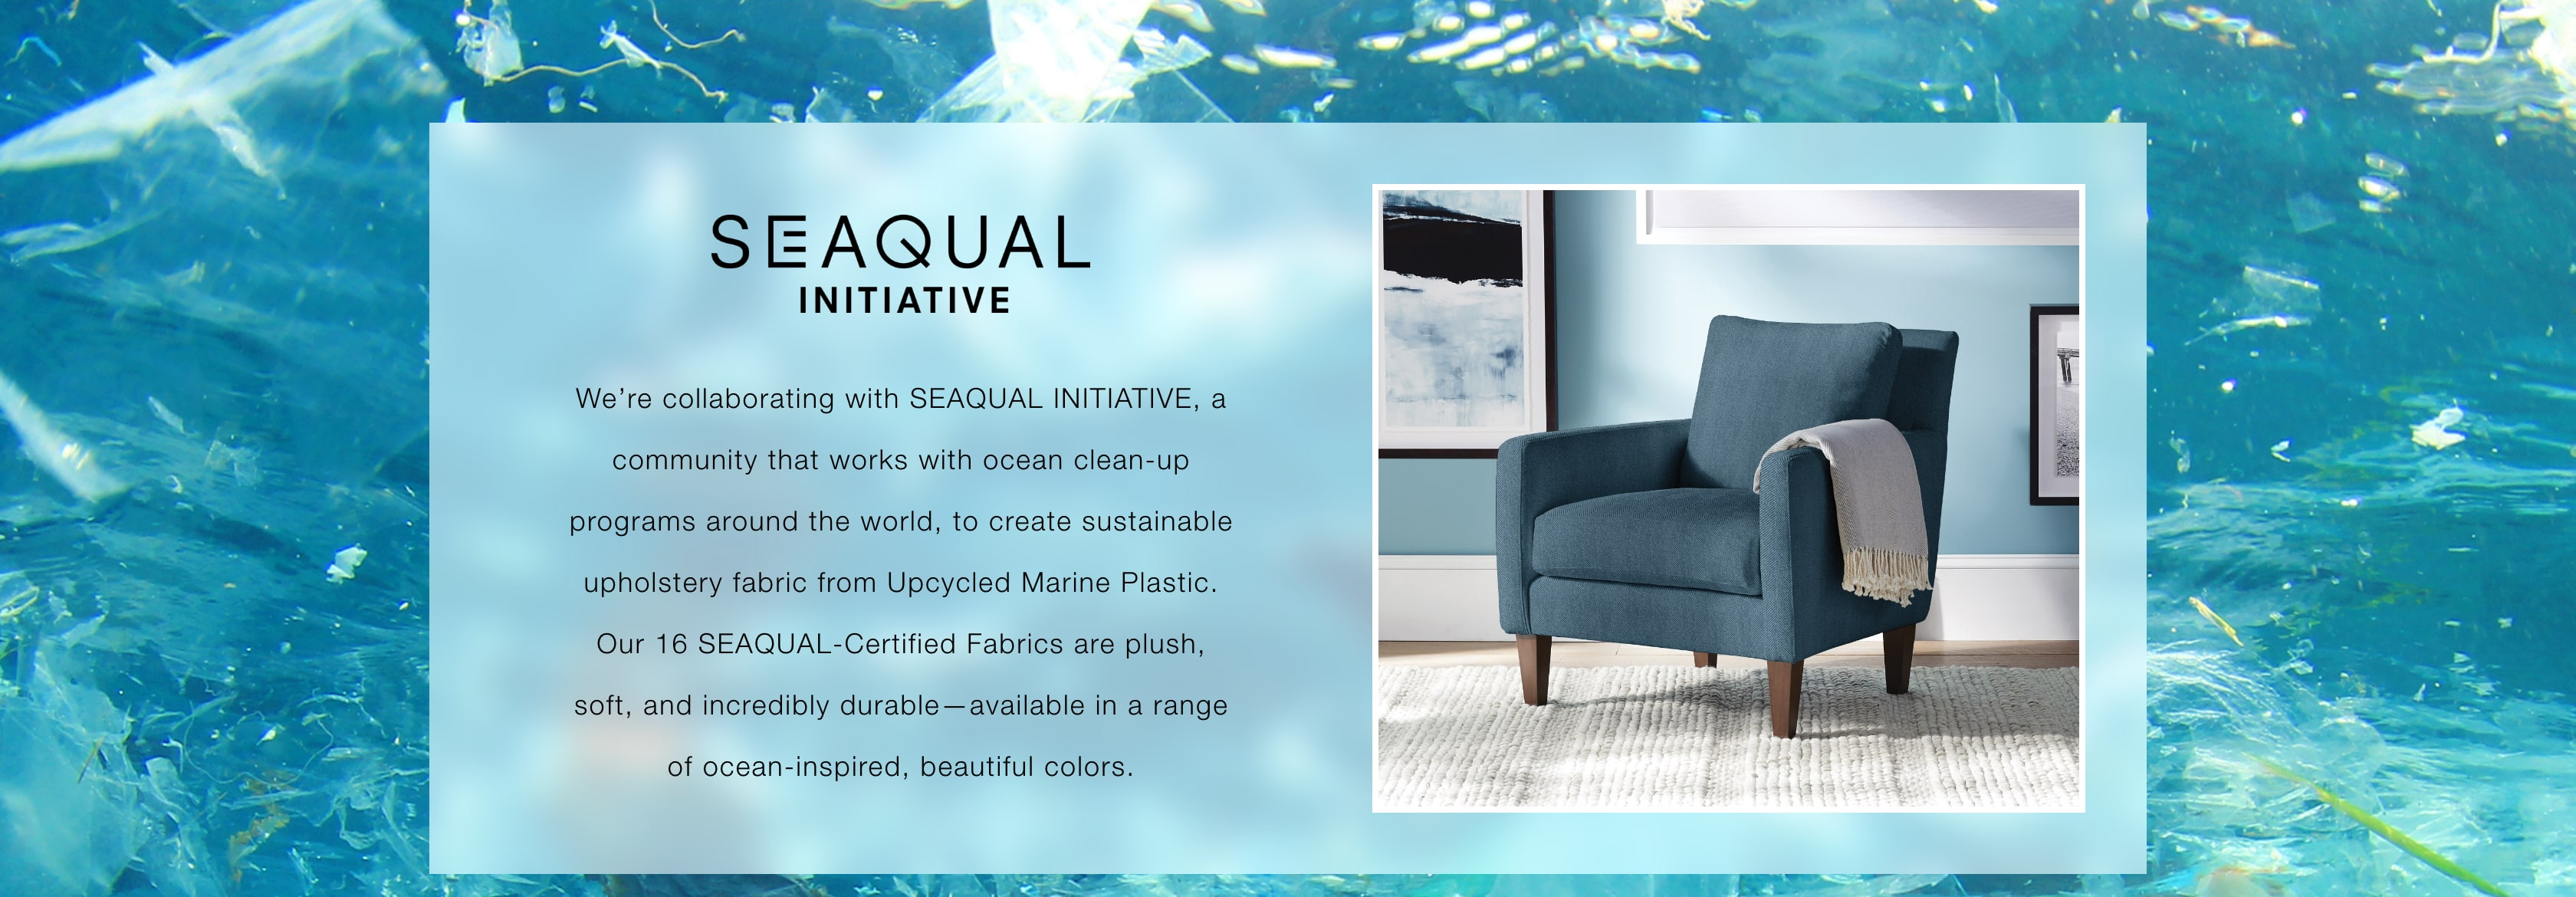 Shop the SEAQUAL Initiative - Sustainable Fabrics Made From Upcycled Marine Plastic